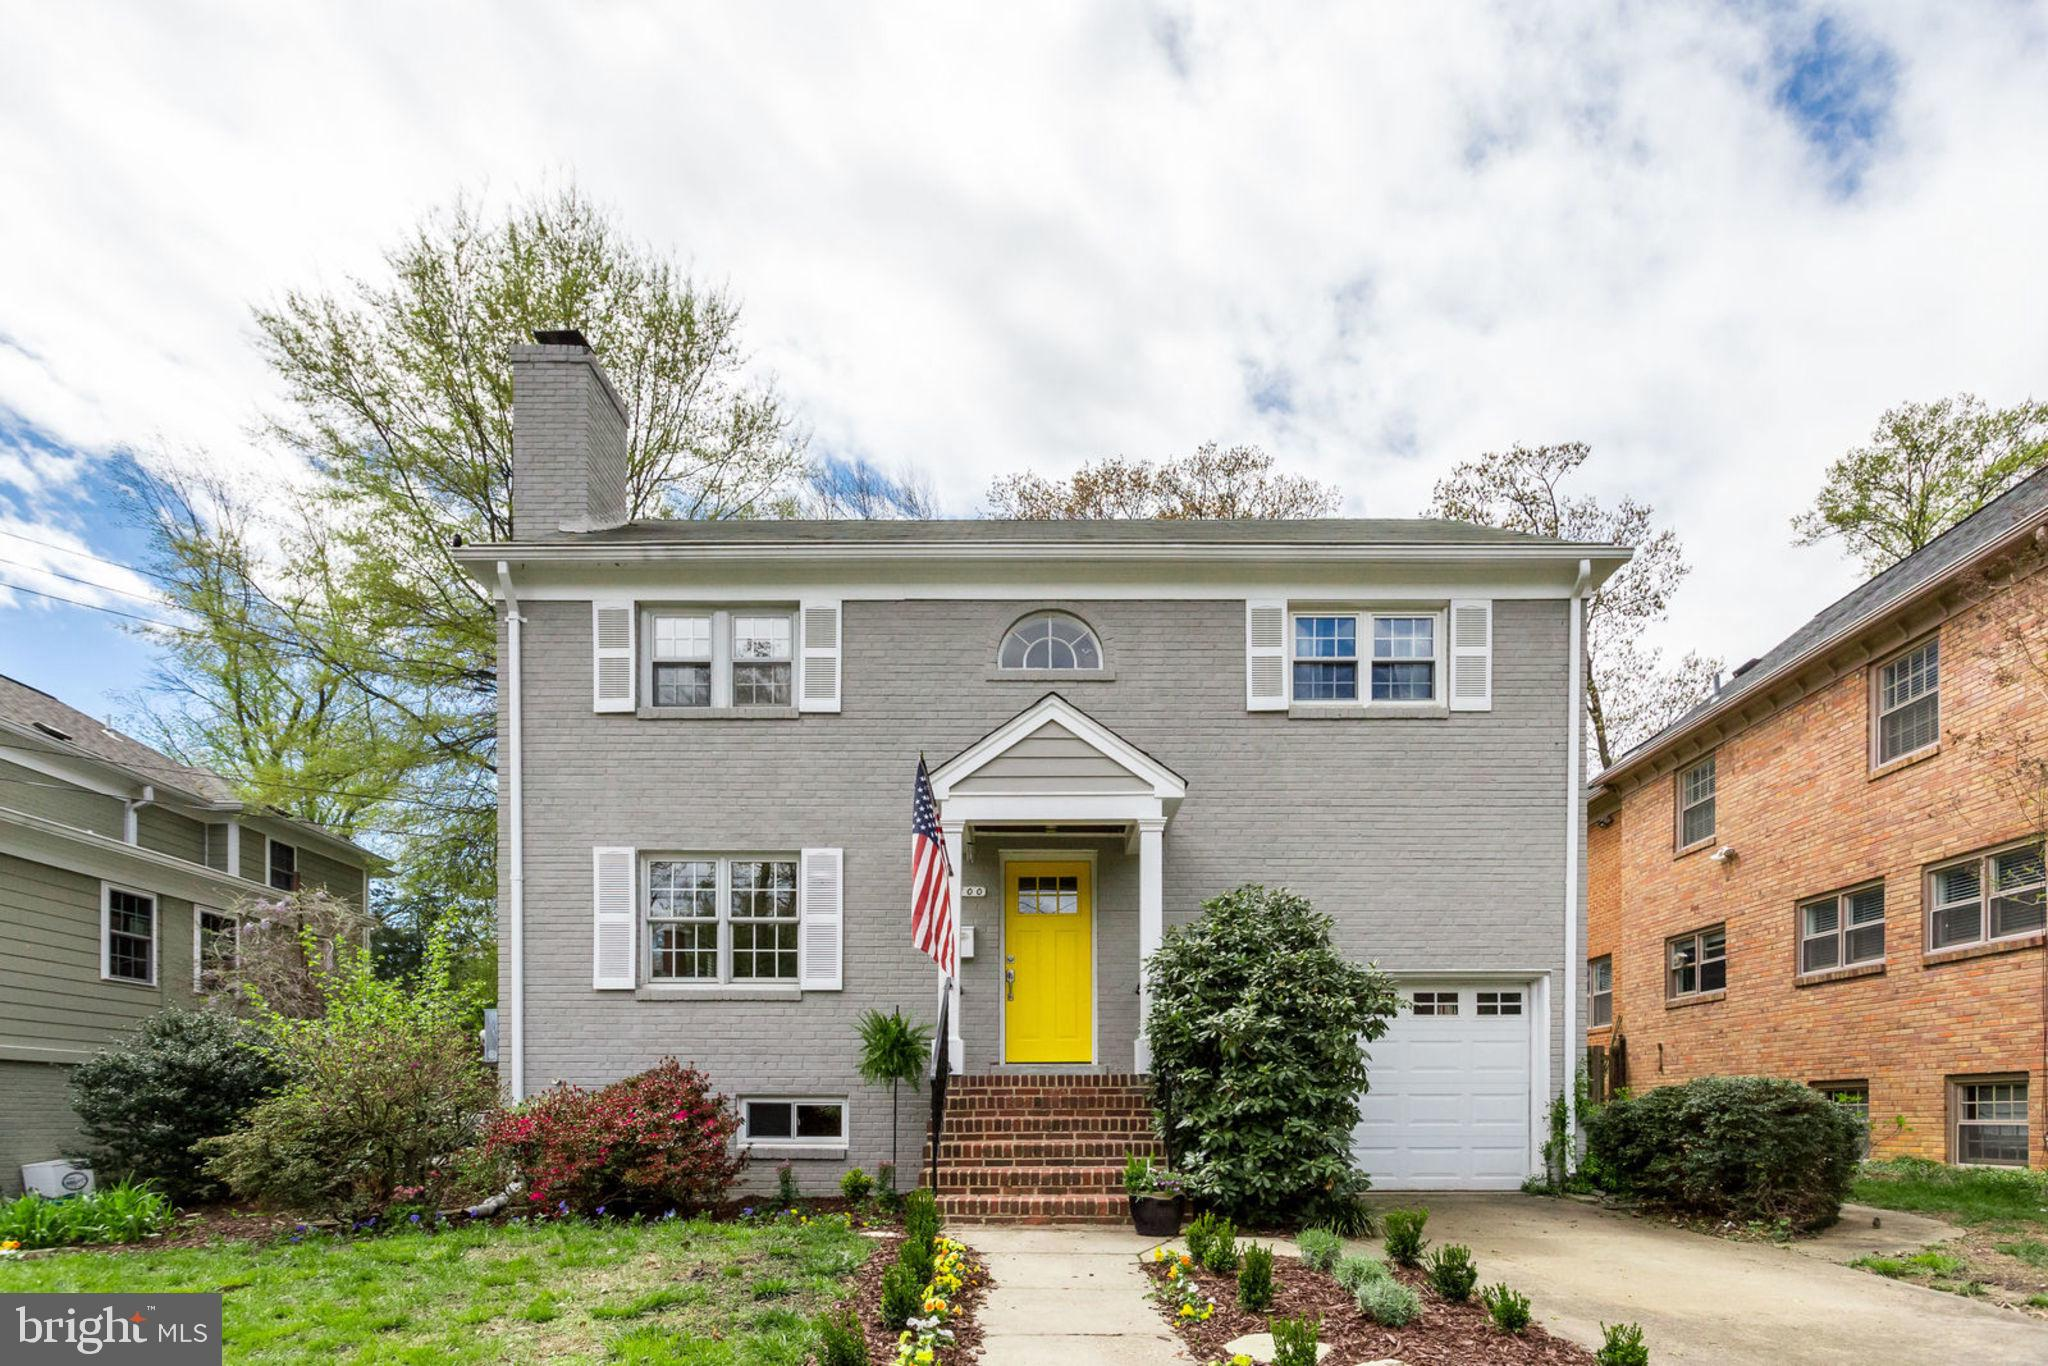 Welcome home to this stunning and renovated beautifully painted brick colonial!  2018 kitchen remodel opens up to sunny vaulted ceiling family room.  Exterior painted and front door replaced. New light fixtures throughout.  Living room with woodstove insert makes fall nights cozy. Fully finished basement in 2014.  1 car garage + storage.  Walk up attic stairs to full floored attic (perfect for storage or potential addition later!).  Open Saturday 4/20 from 2-4.  Showings may begin on 4/18 (not before).  Offers, if any, will be reviewed Tuesday 4/23 at 10 am.  A full list of improvements and ideal settlement timeline is in the docs section.